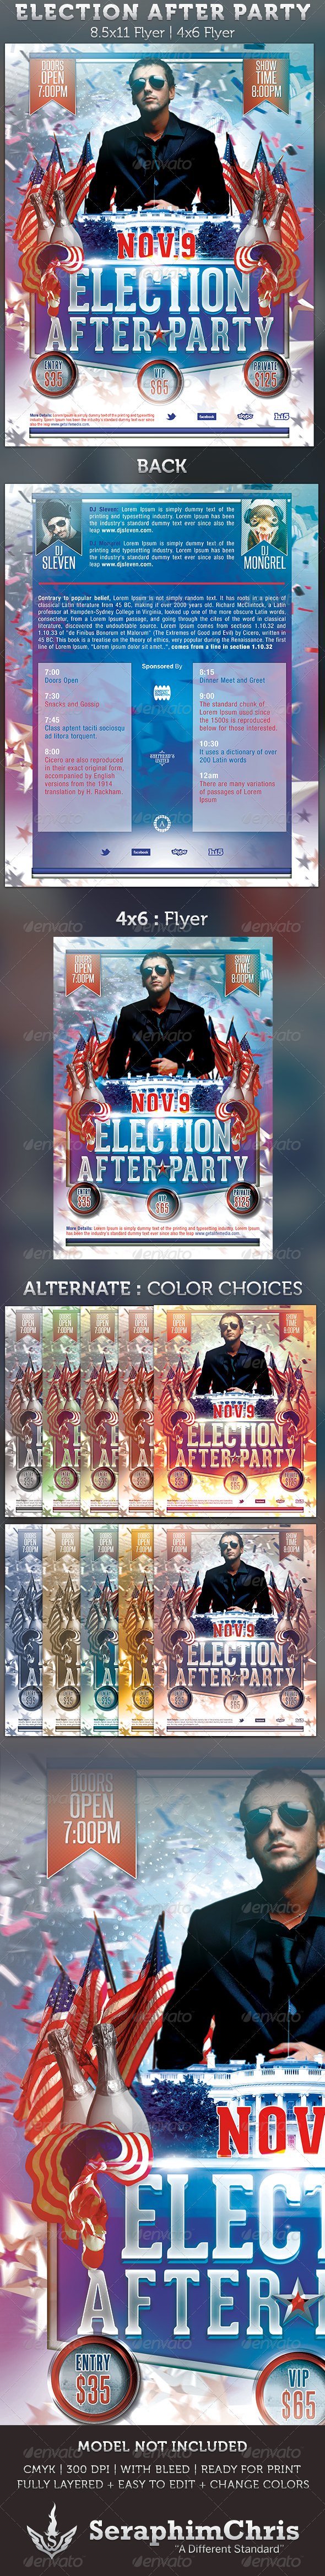 Election After Party Event Flyer Template  - Clubs & Parties Events